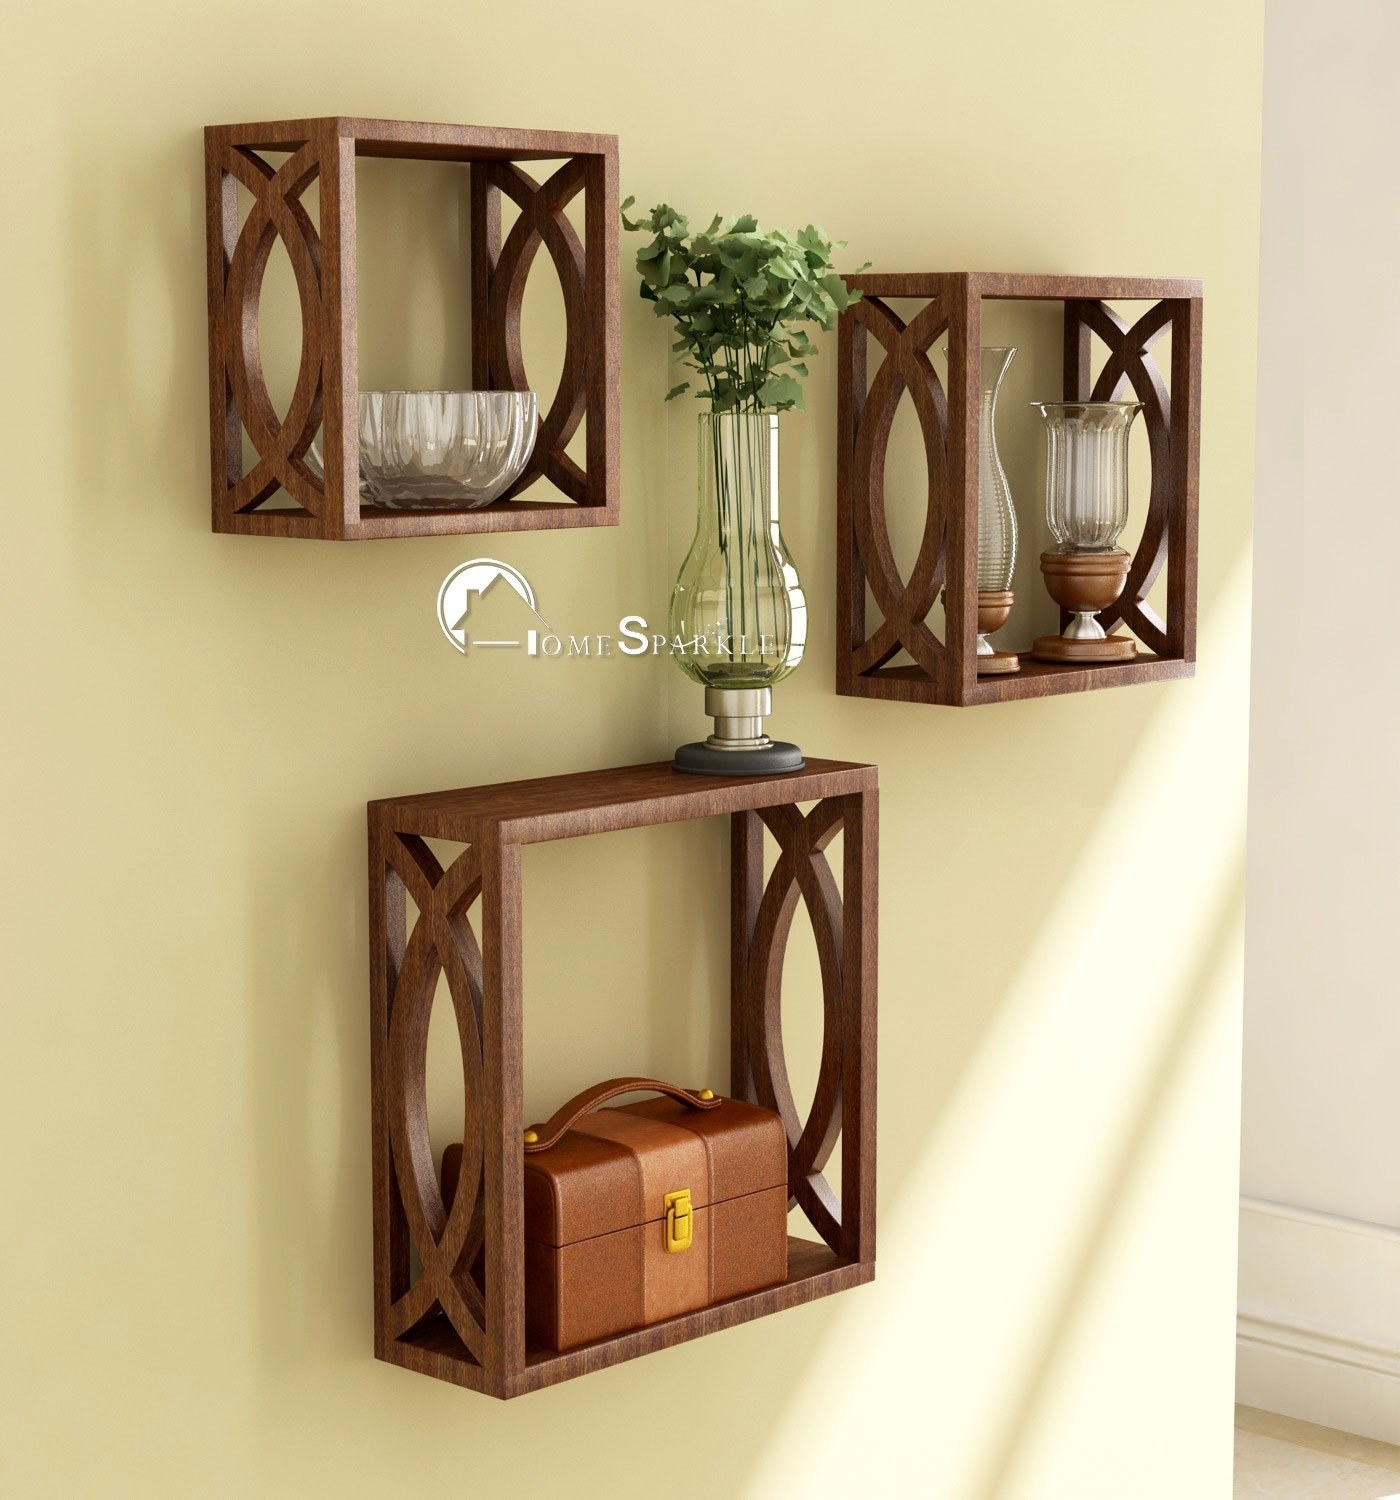 Cubical wooden shelves used to hold glass bowls, lamps, and a small trunk